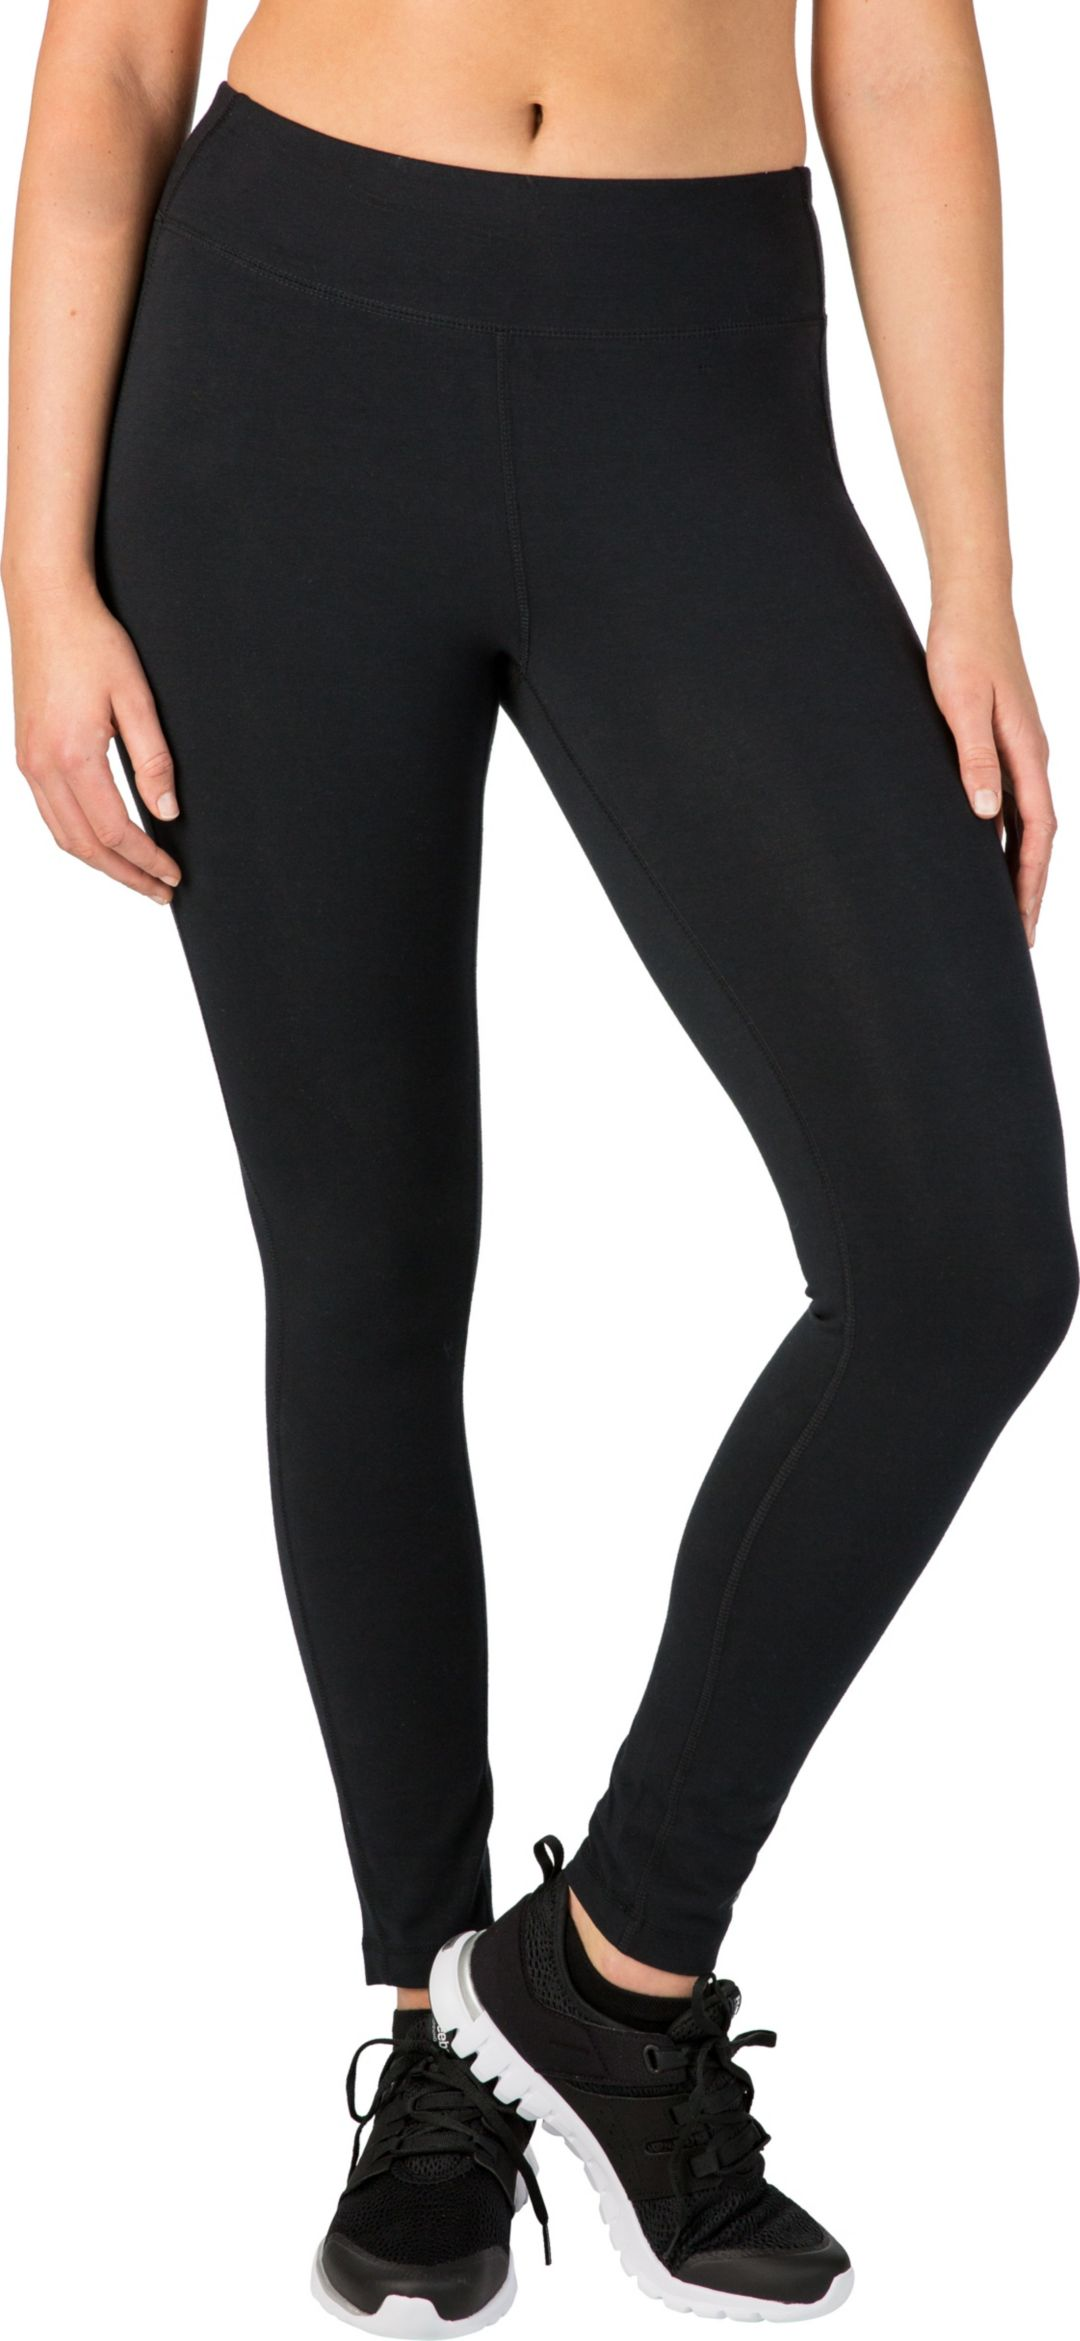 size 16 Activewear Fine Ladies Fitness Tight Fit Ankle Length Leggings